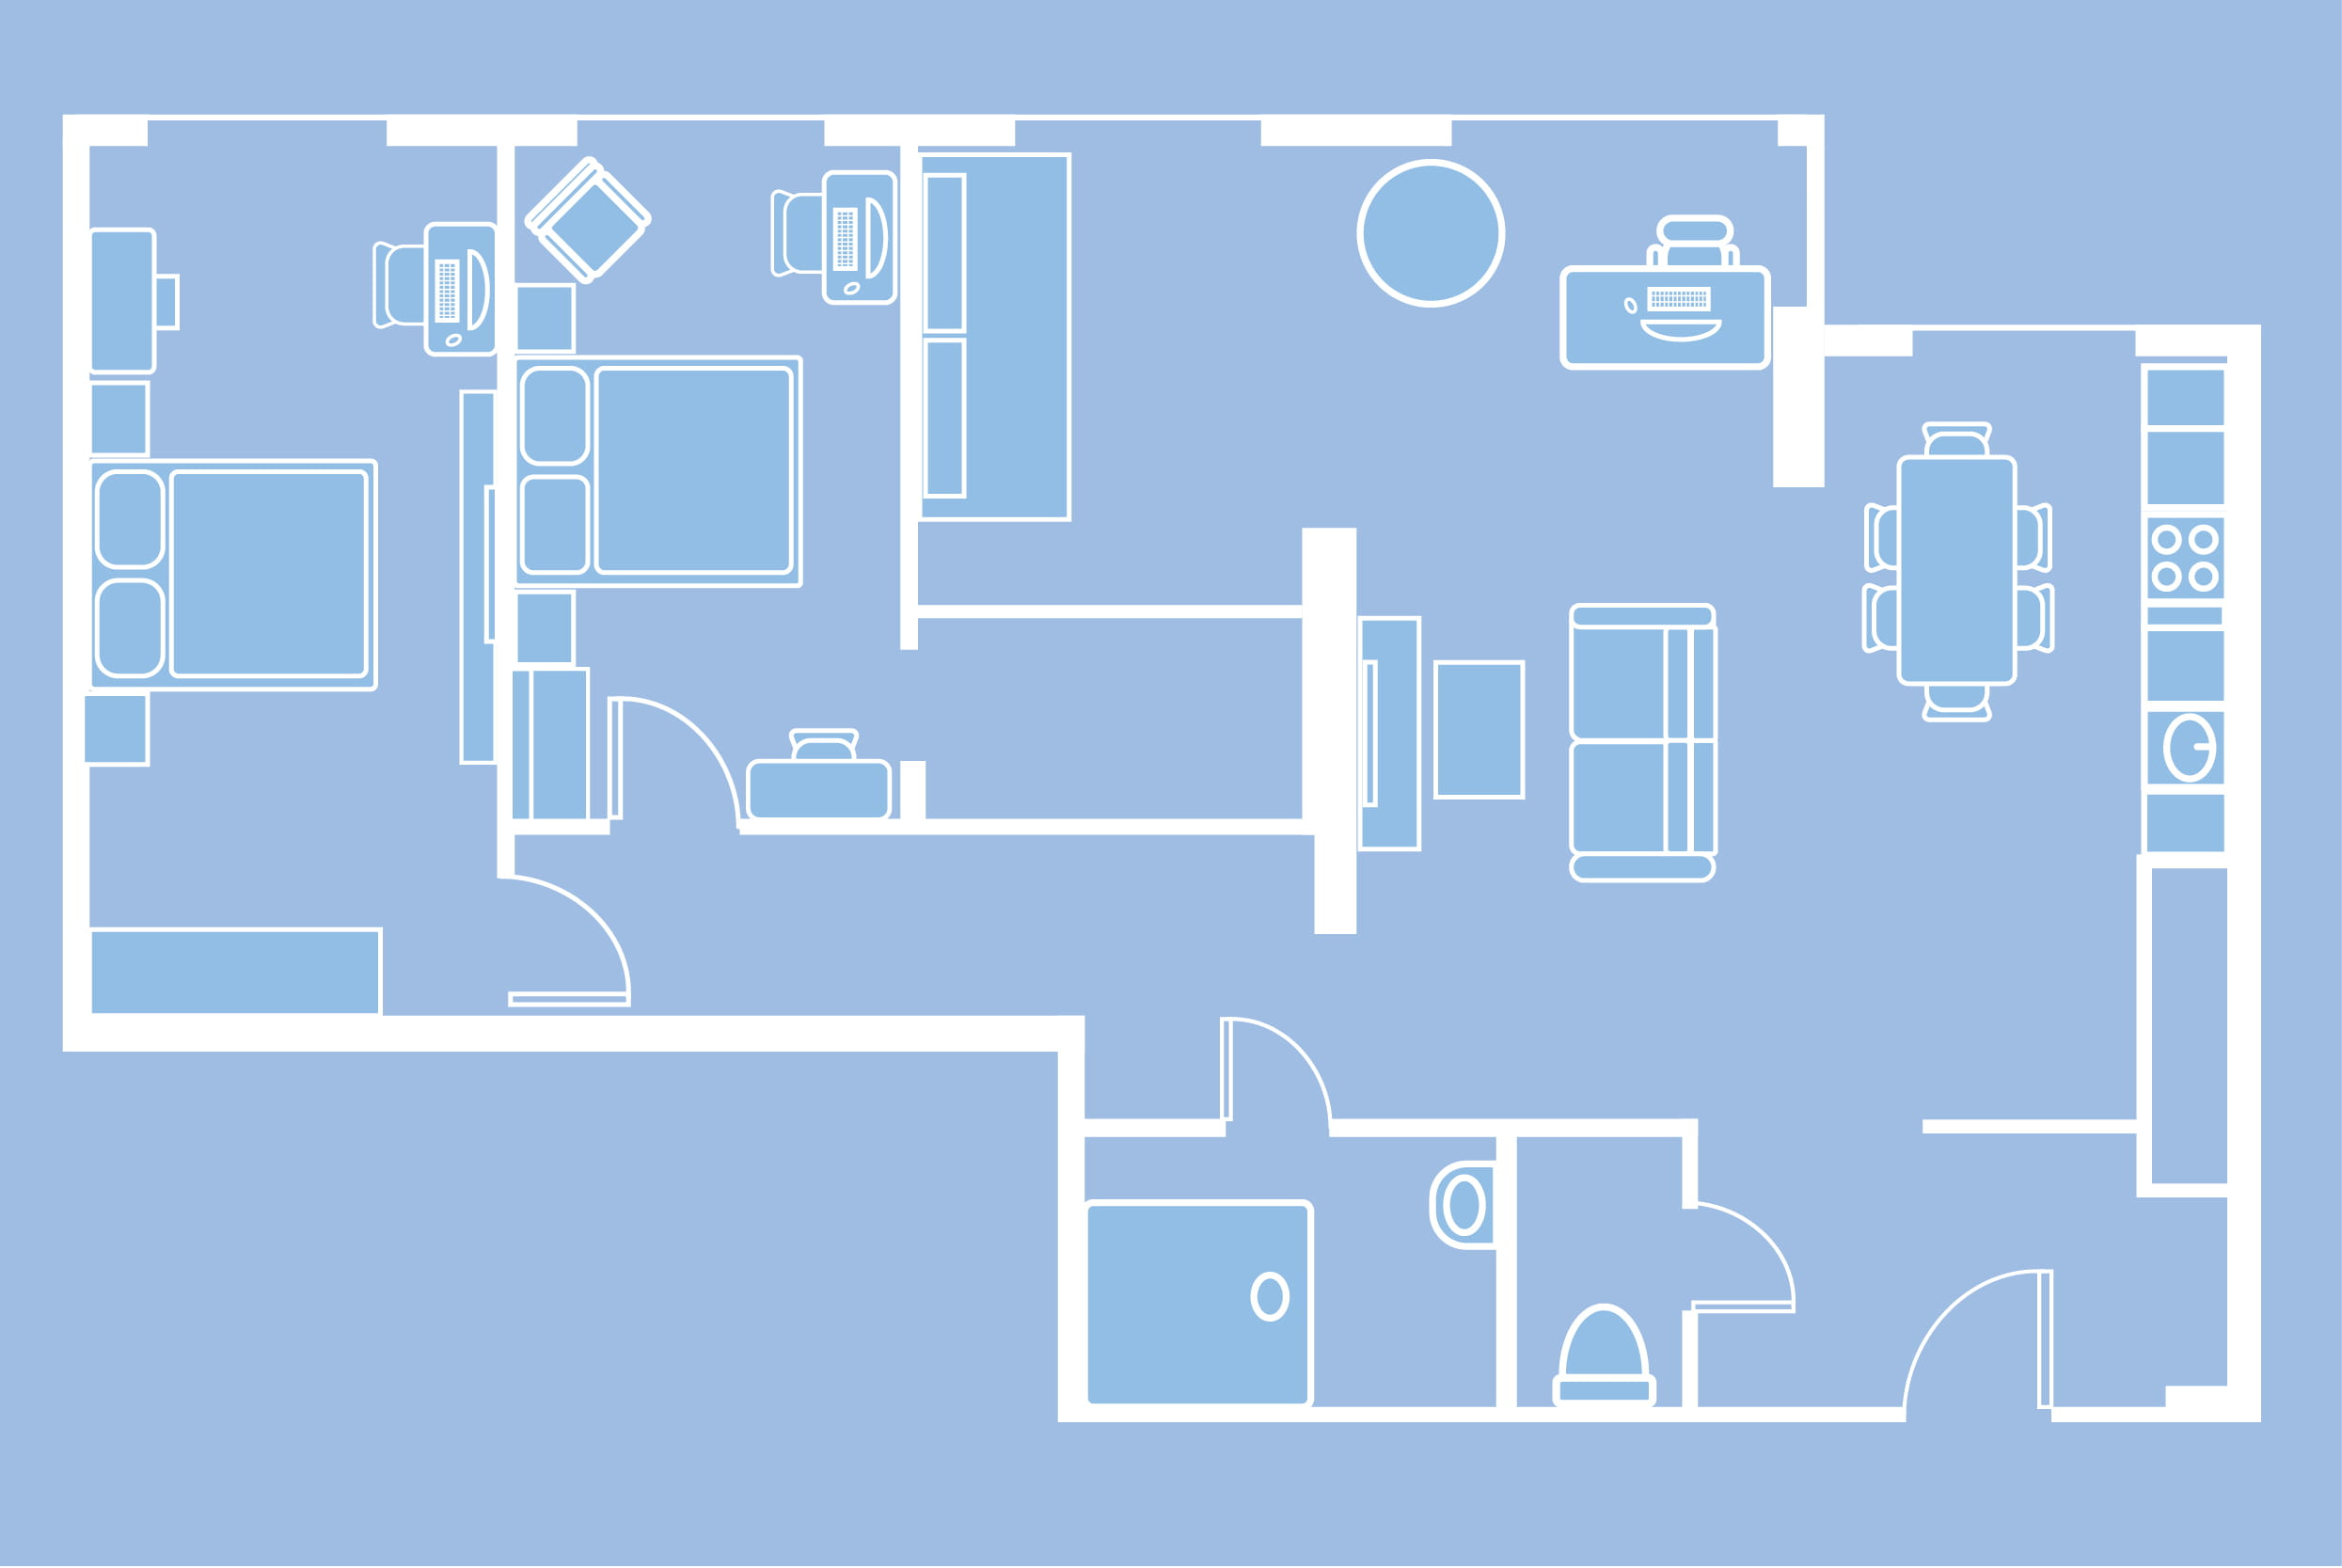 Illustration of an apartment floor plan